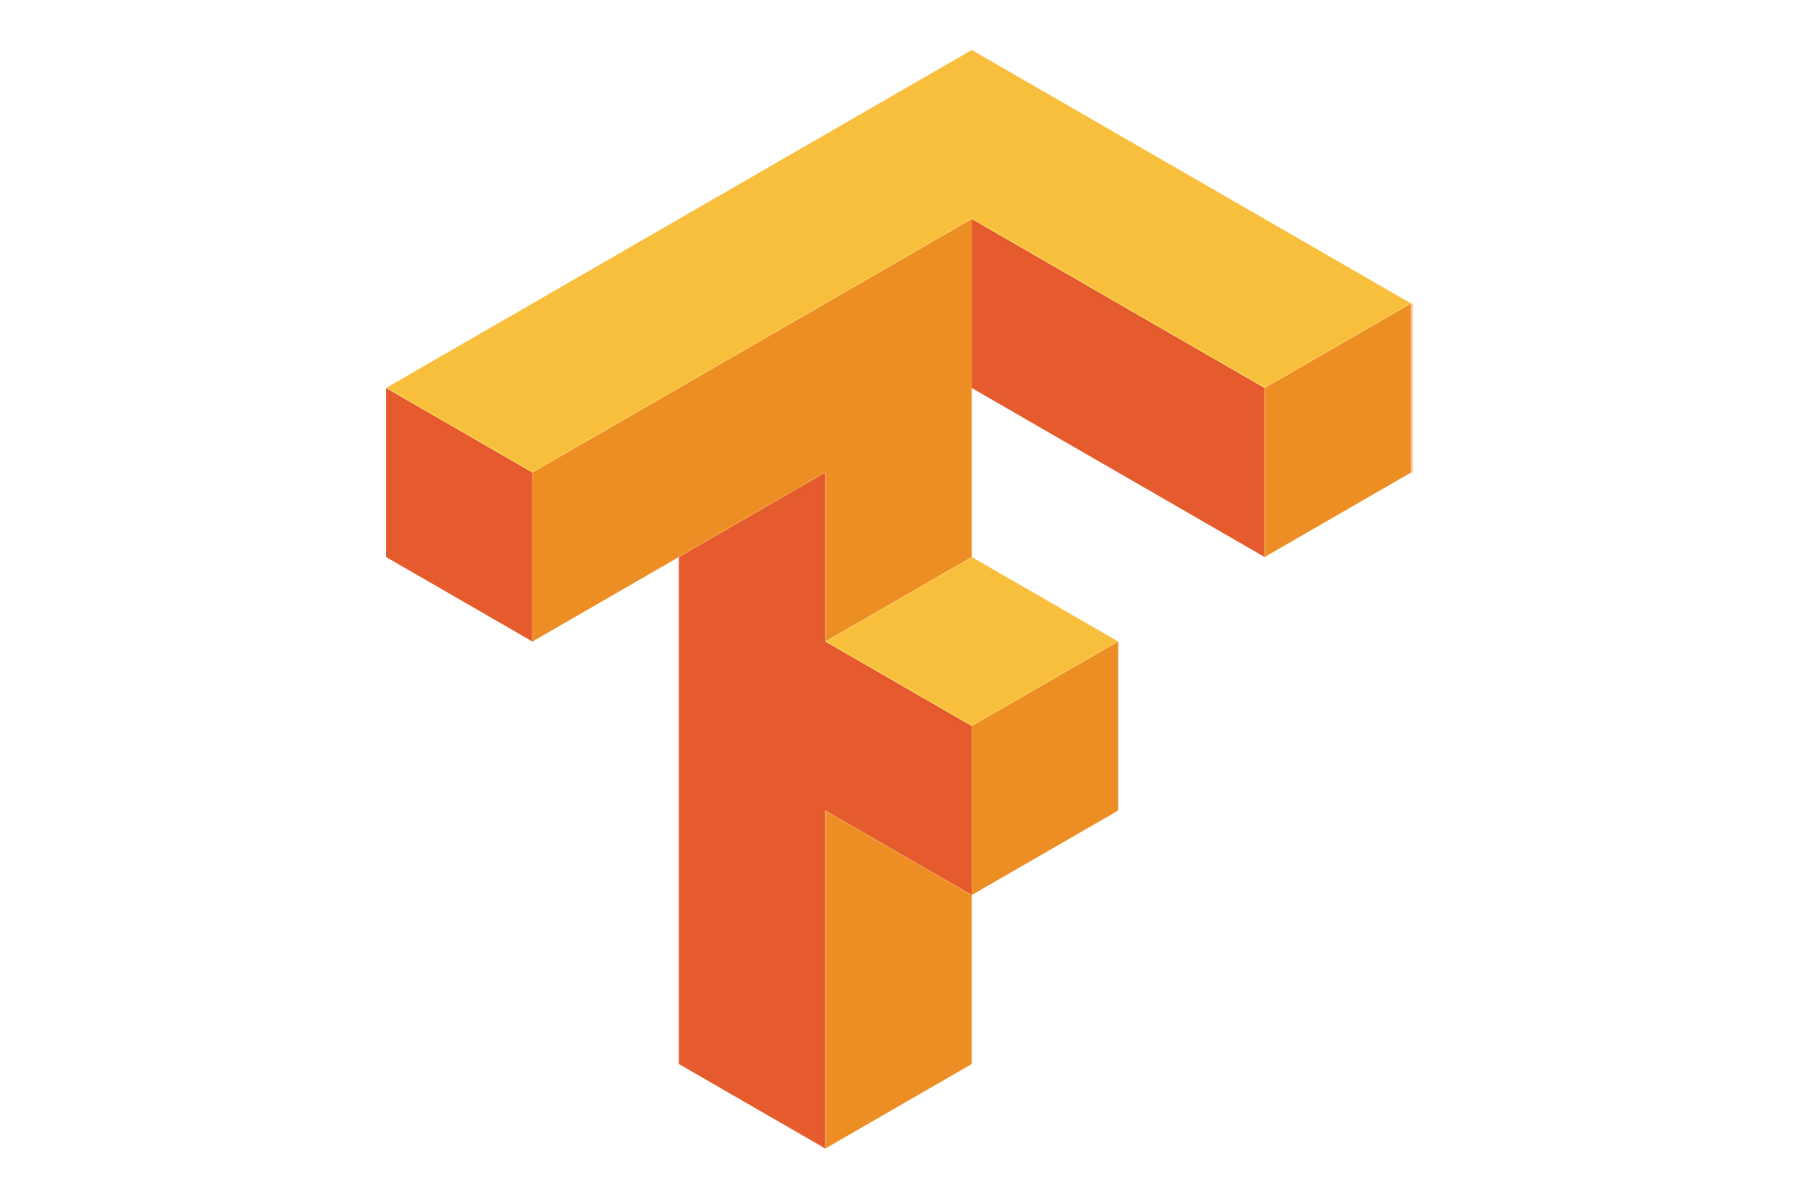 How to run TensorFlow with GPU on Windows 10 in a Jupyter